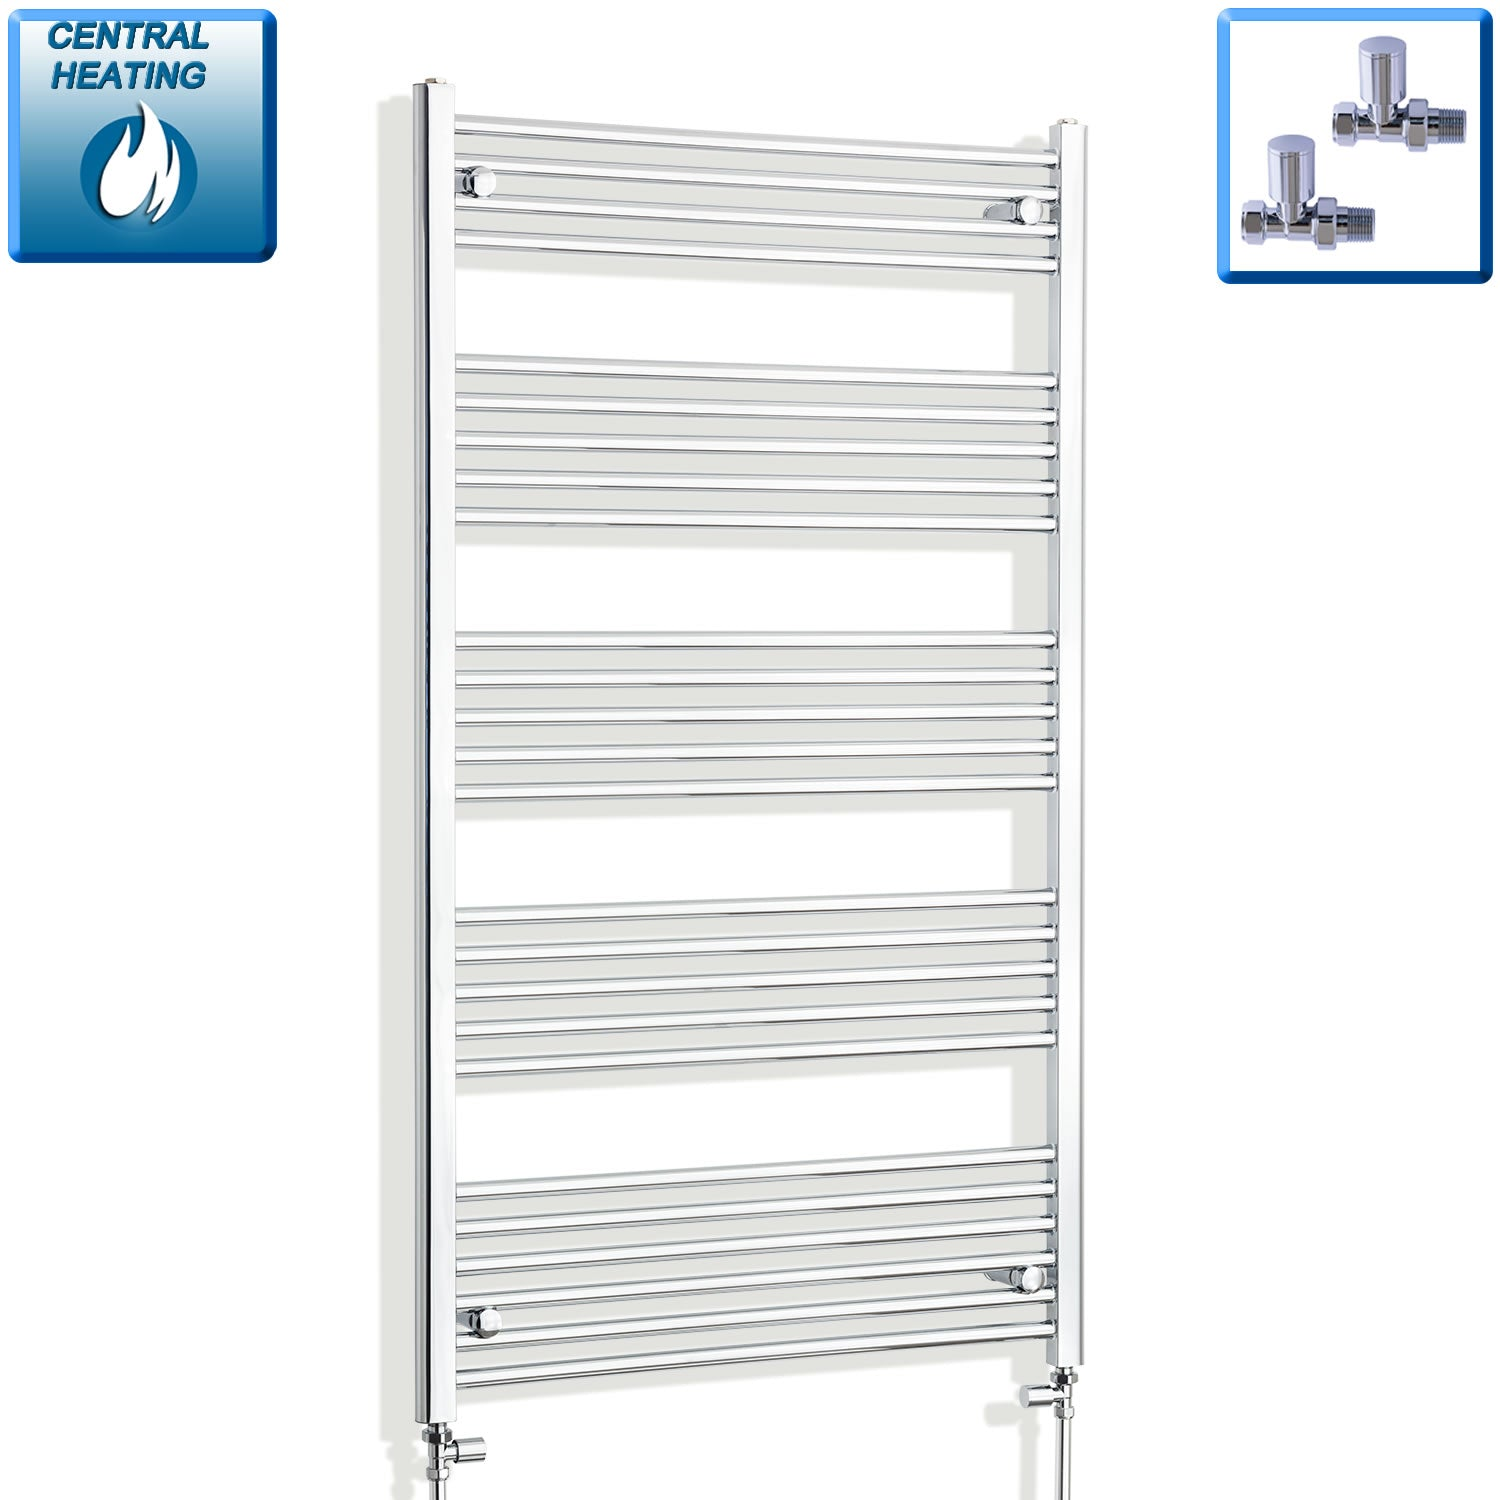 750mm Wide 1400mm High Flat Chrome Heated Towel Rail Radiator HTR,With Straight Valve